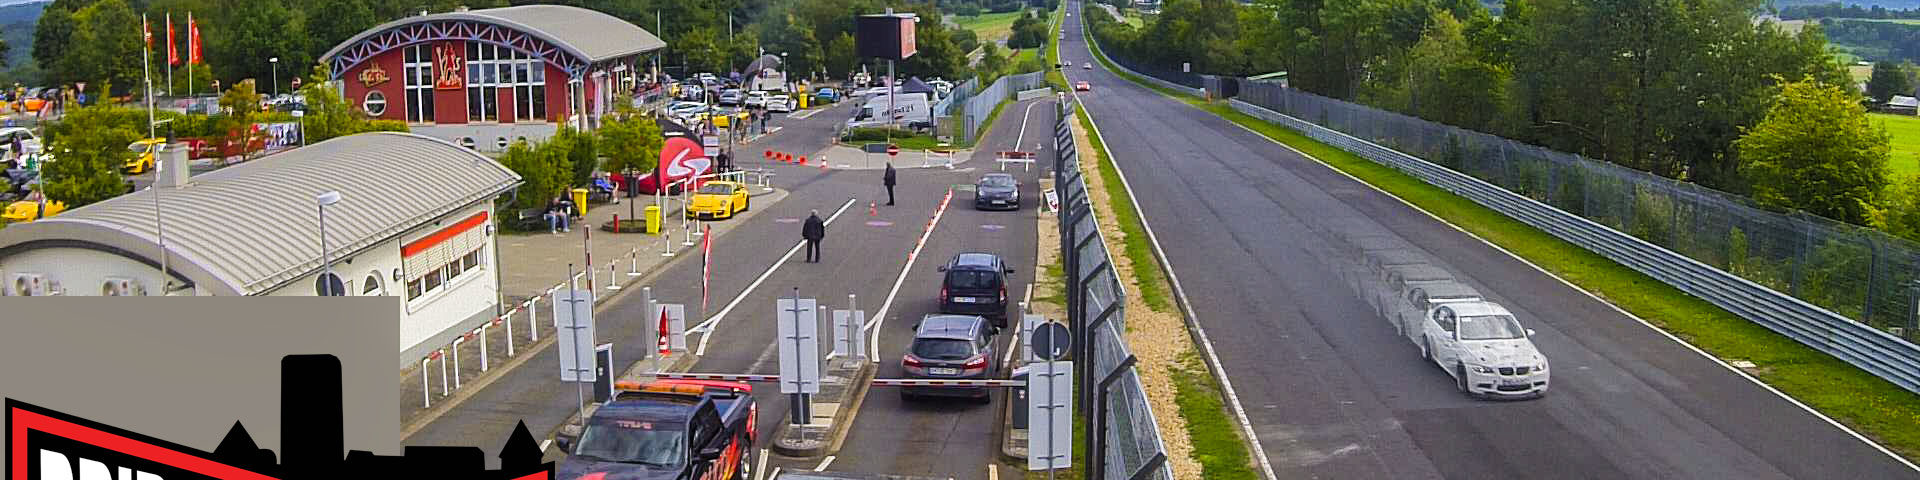 Book a Nürburgring trackday with BridgeToGantry